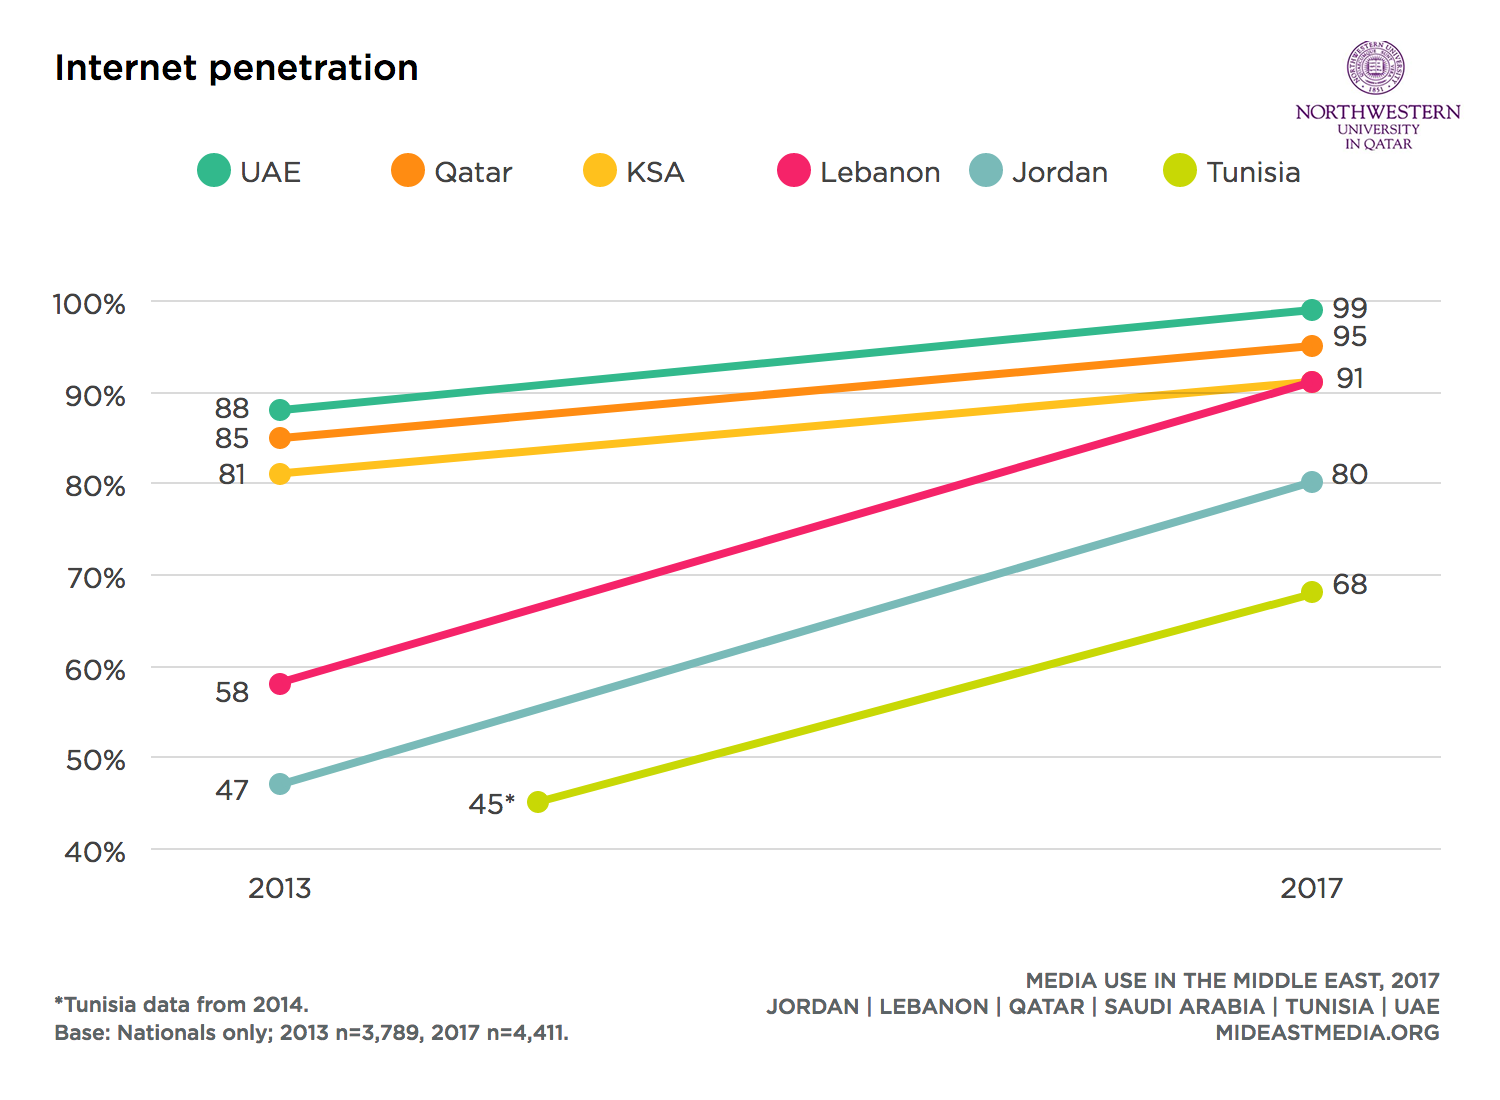 Internet Penetration in UAE Increased by 11% to Reach 99% ...